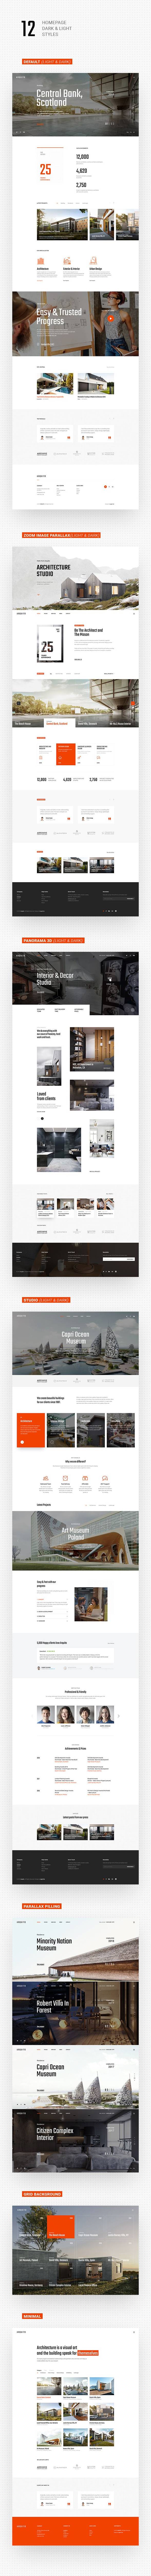 Arquito - Architecture & Interior PSD Template - 5